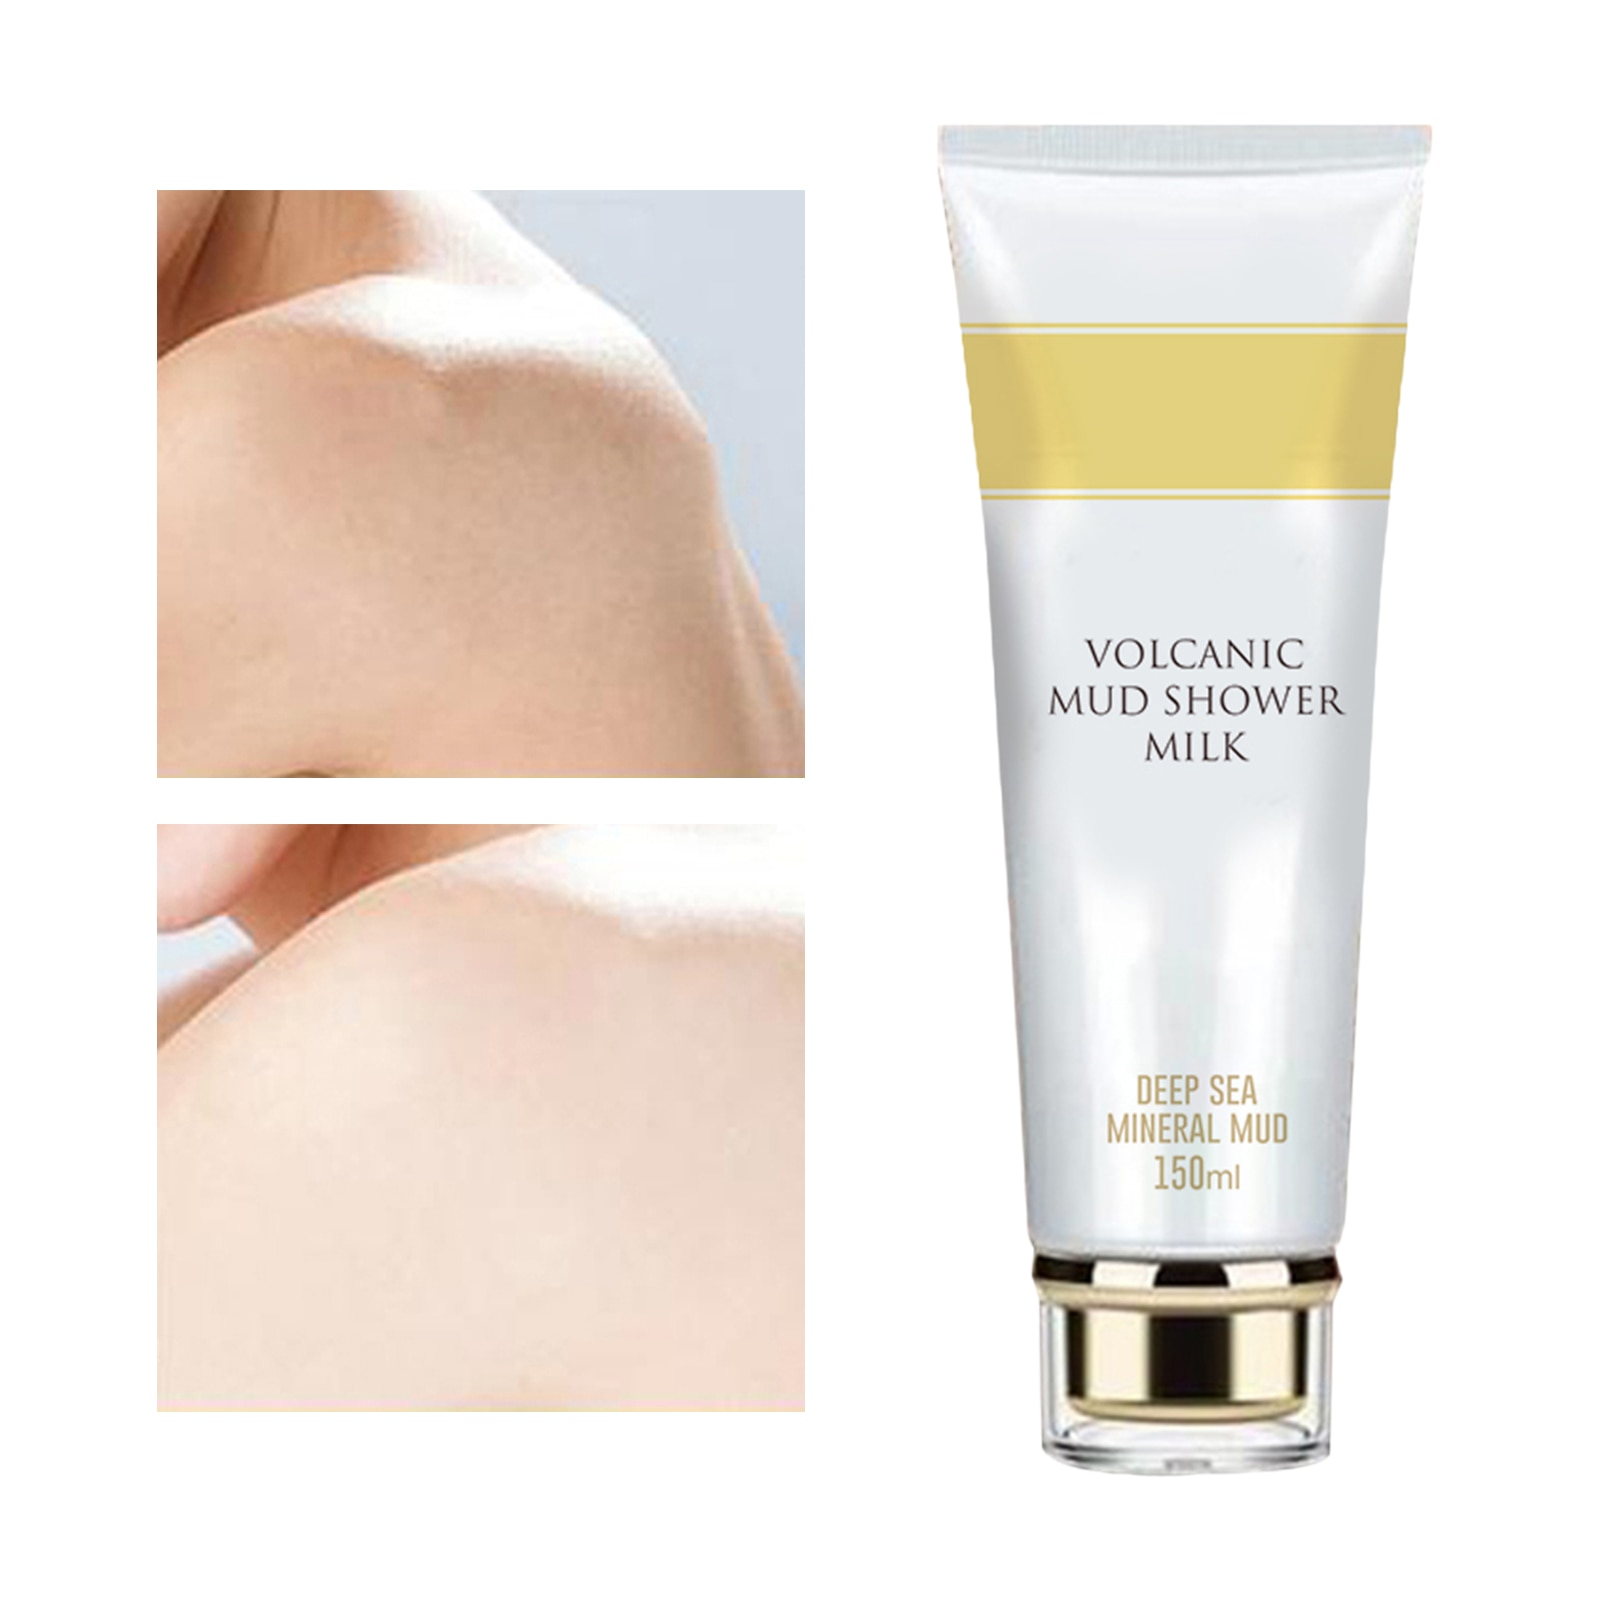 Volcanic Mud Body Wash Visibly Smoother Skin For Sun Damaged Skin Women